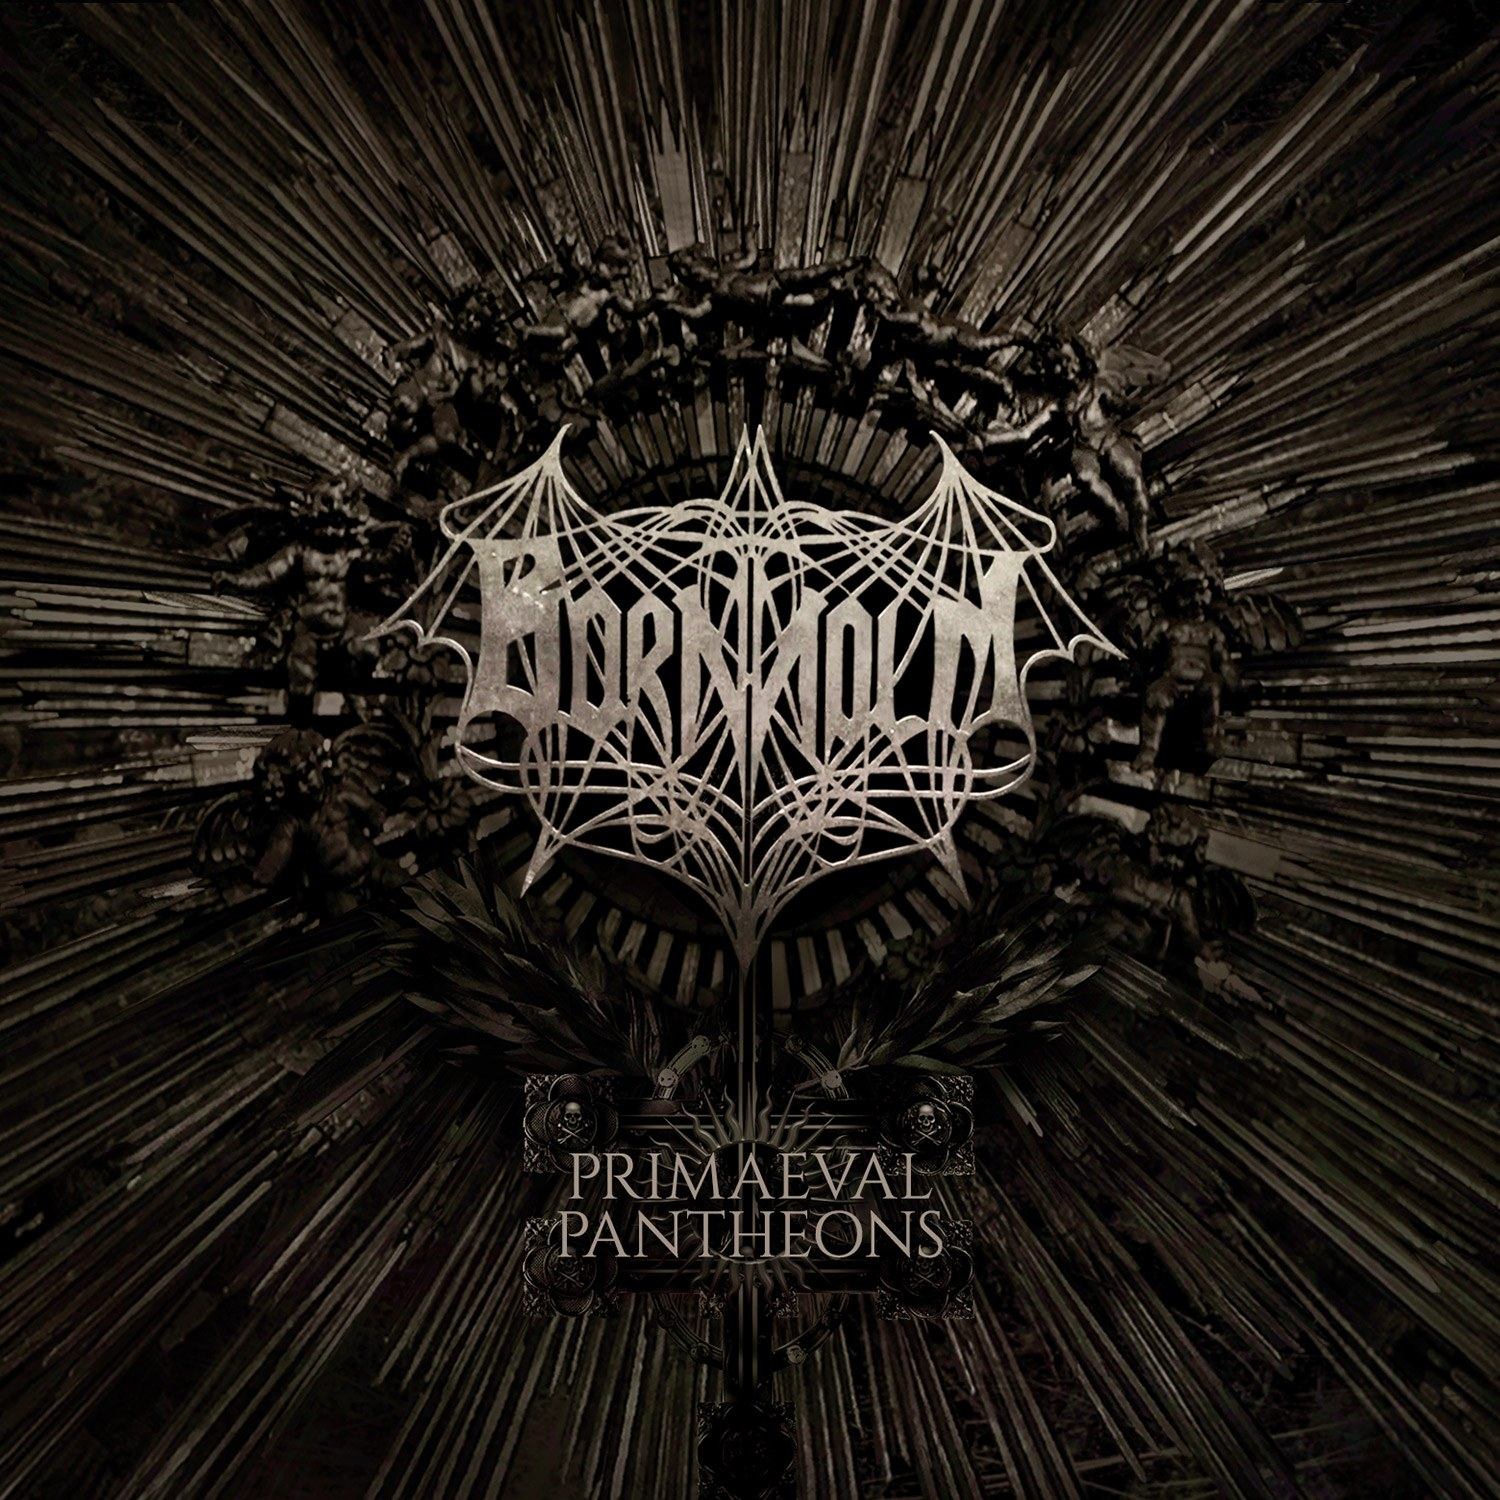 Review for Bornholm - Primaeval Pantheons